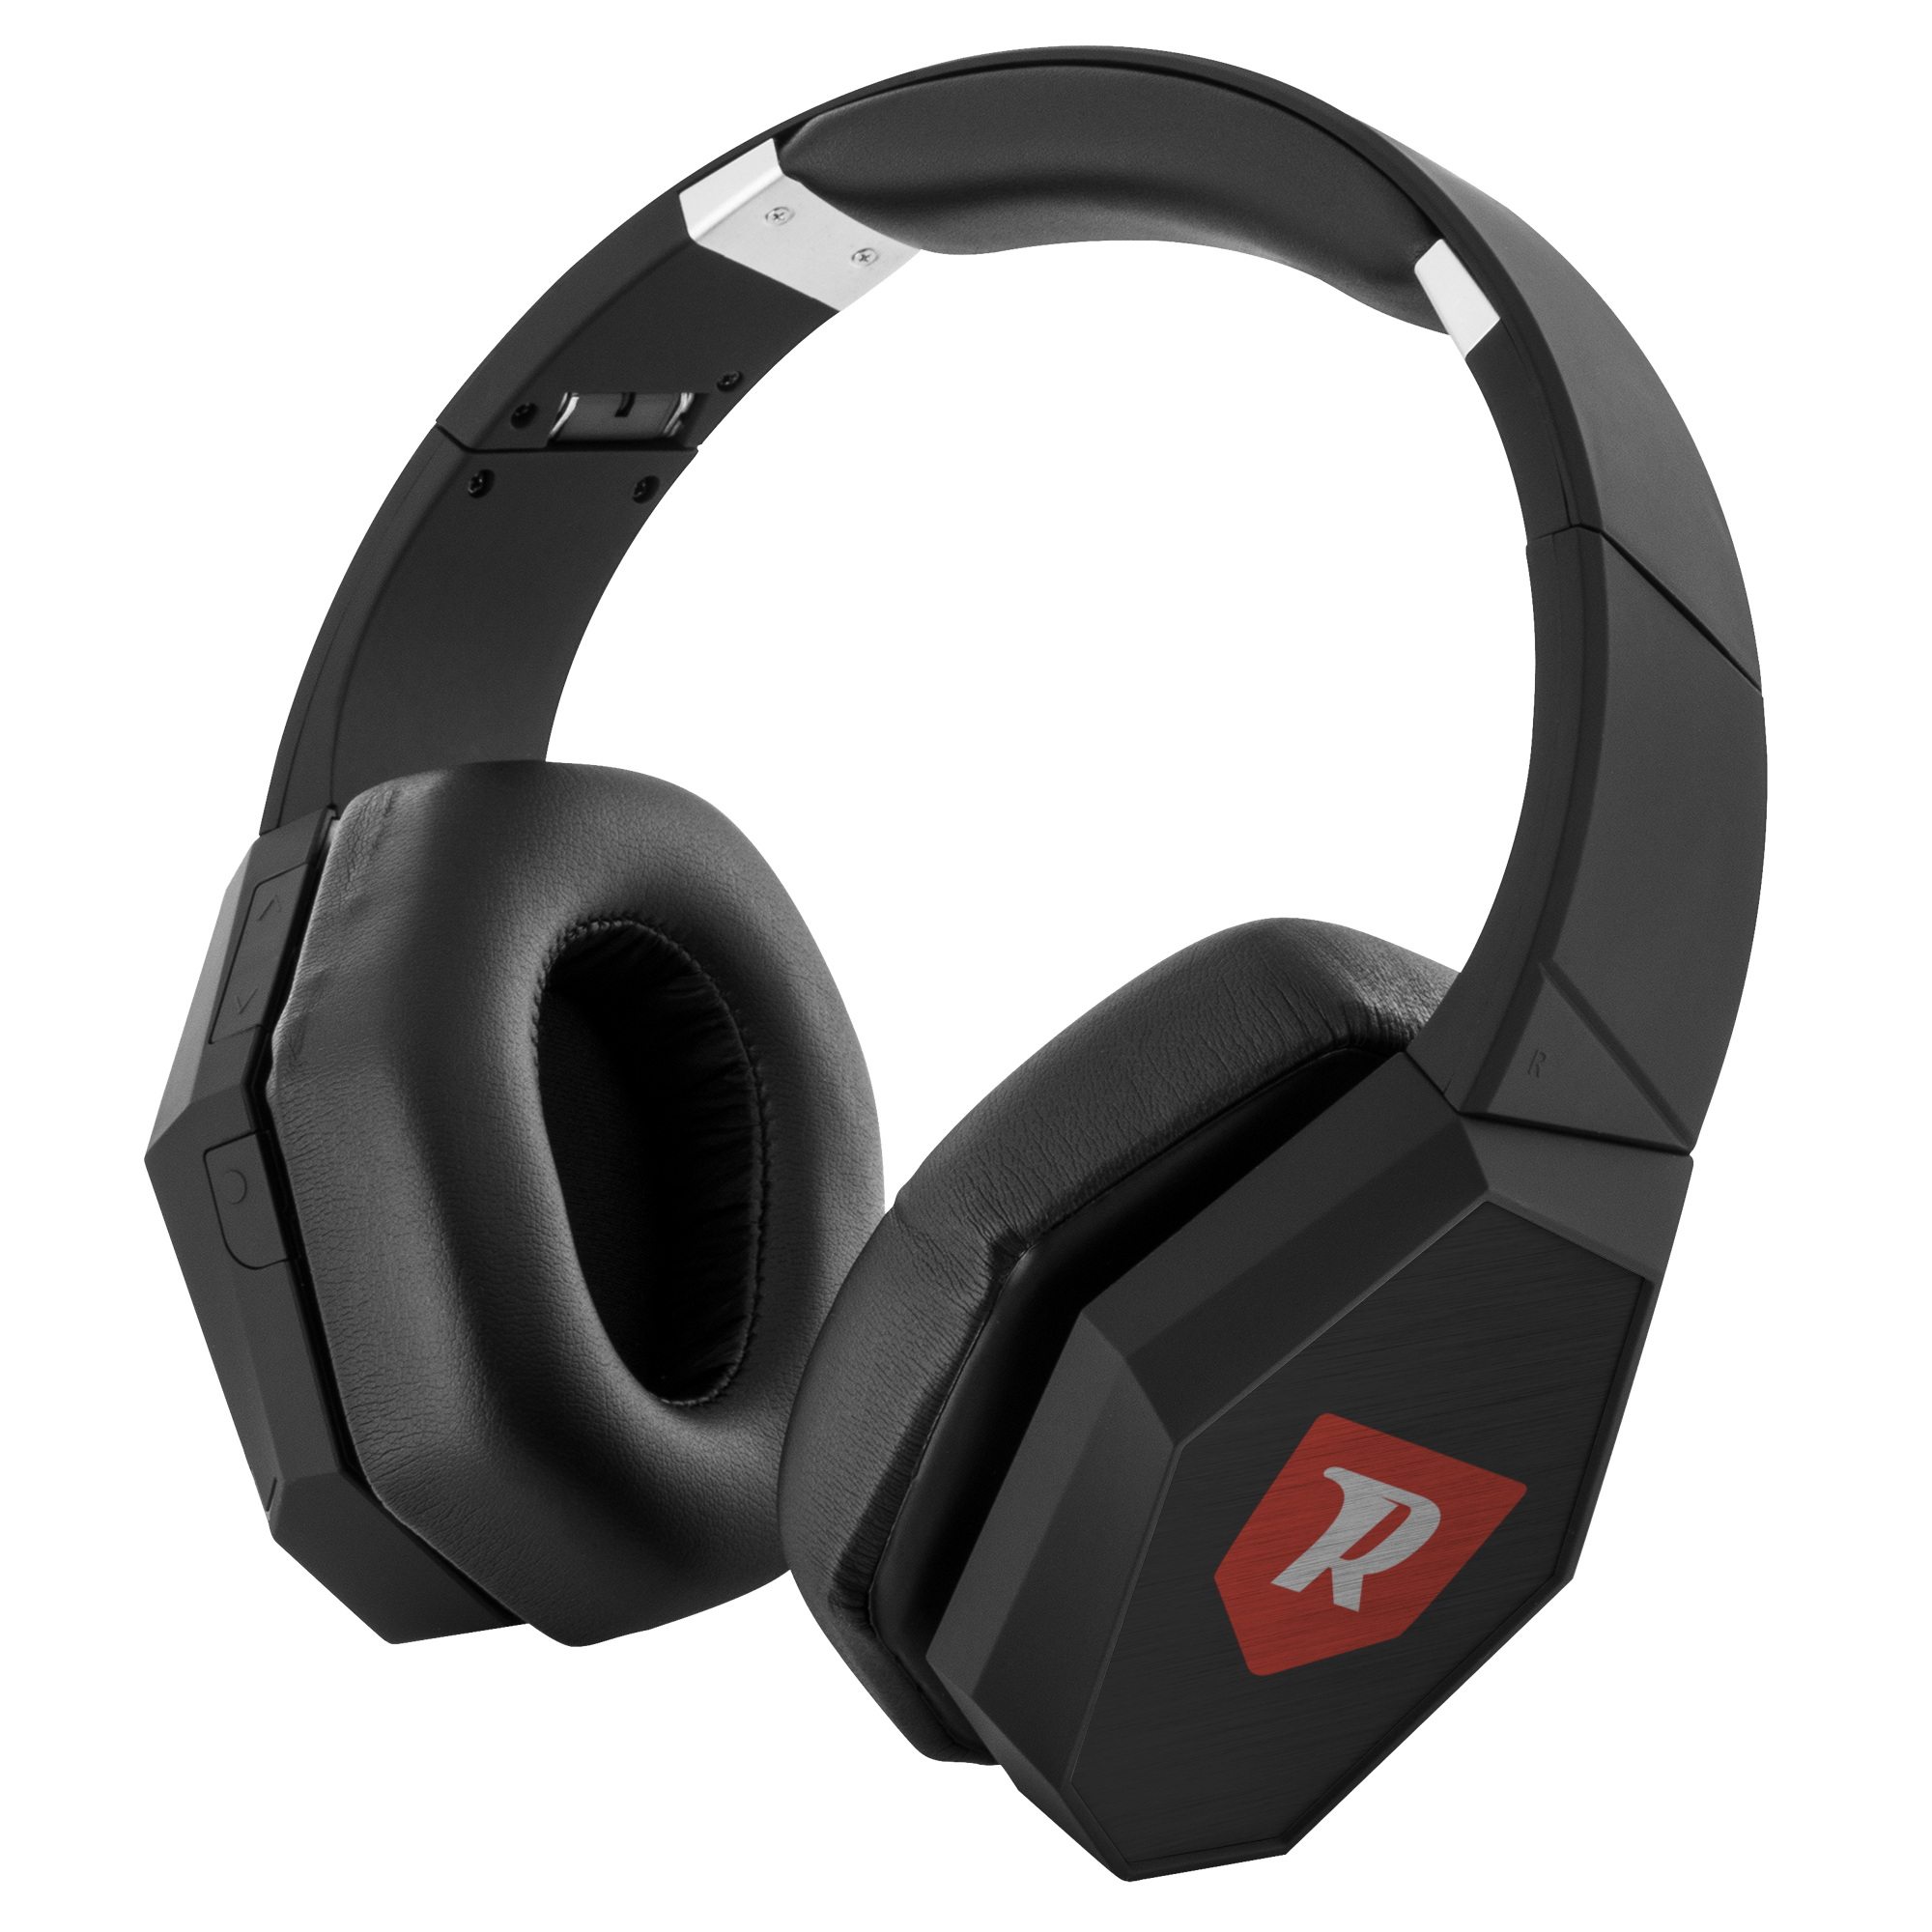 RP Wrapsody Headphones - Red Rocket Brand